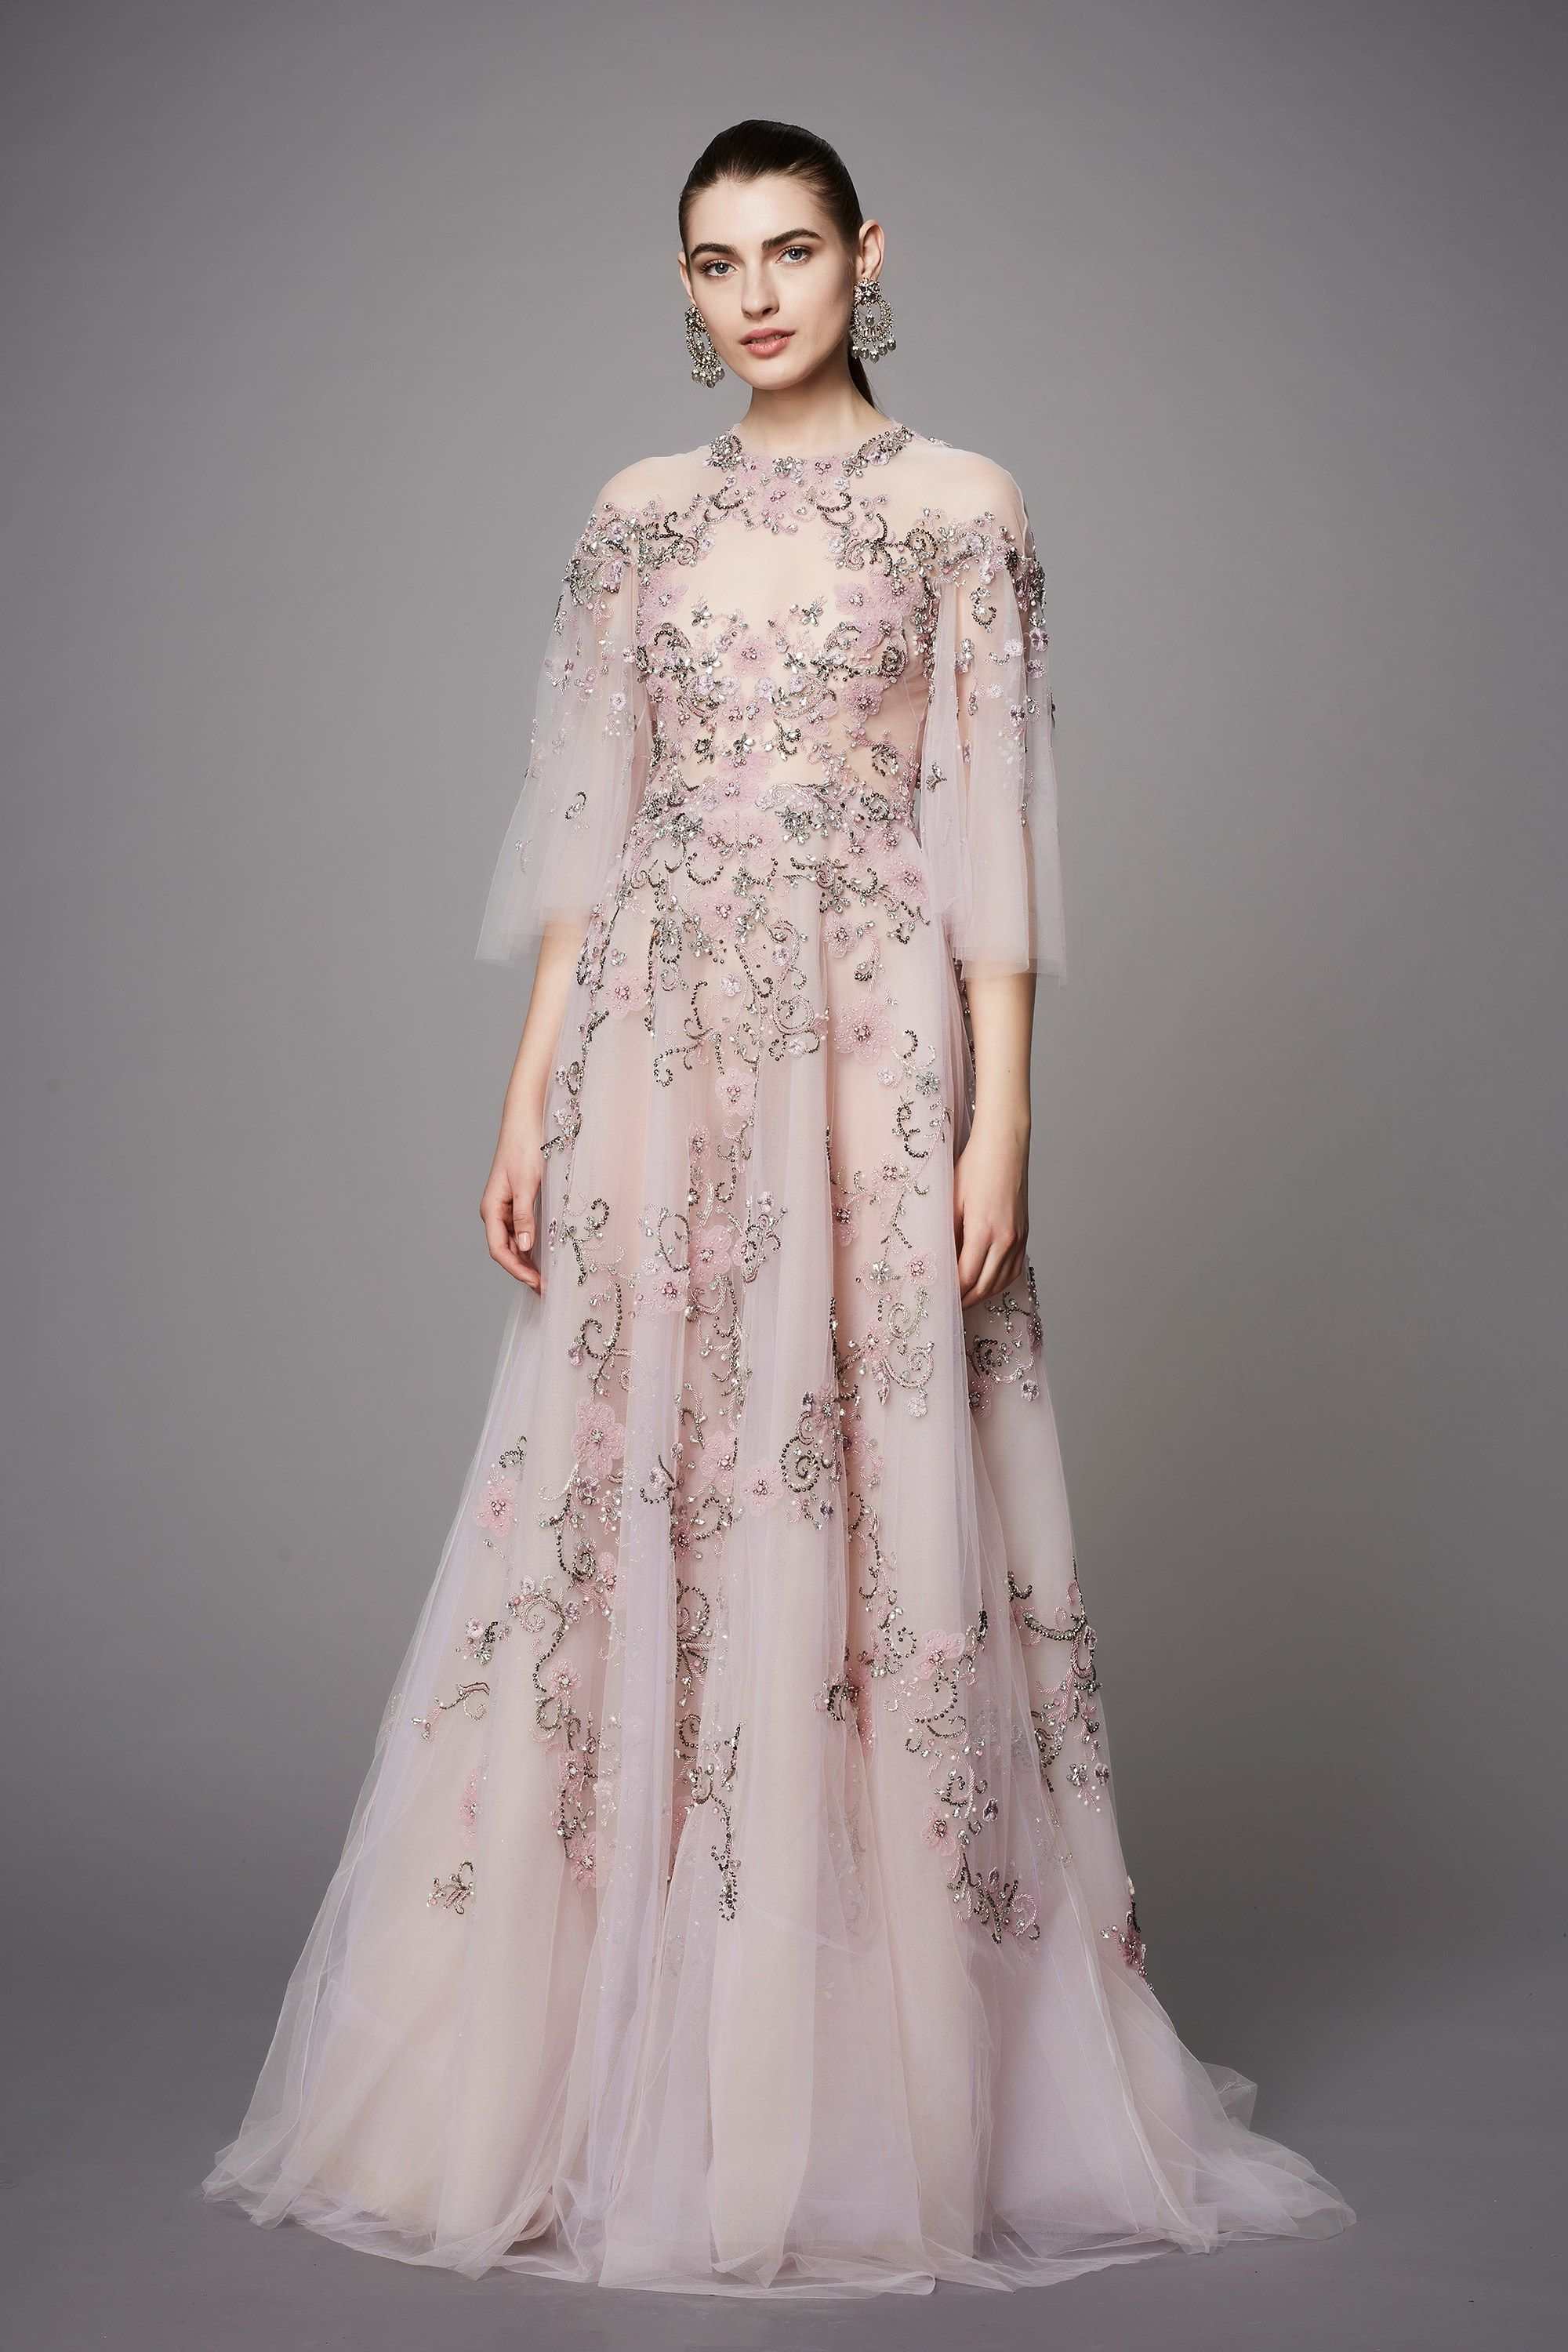 41ba8393aa Marchesa Pre-Fall 2017 Fashion Show in 2019 | dress to kill | Marchesa gowns,  Dresses, Fashion